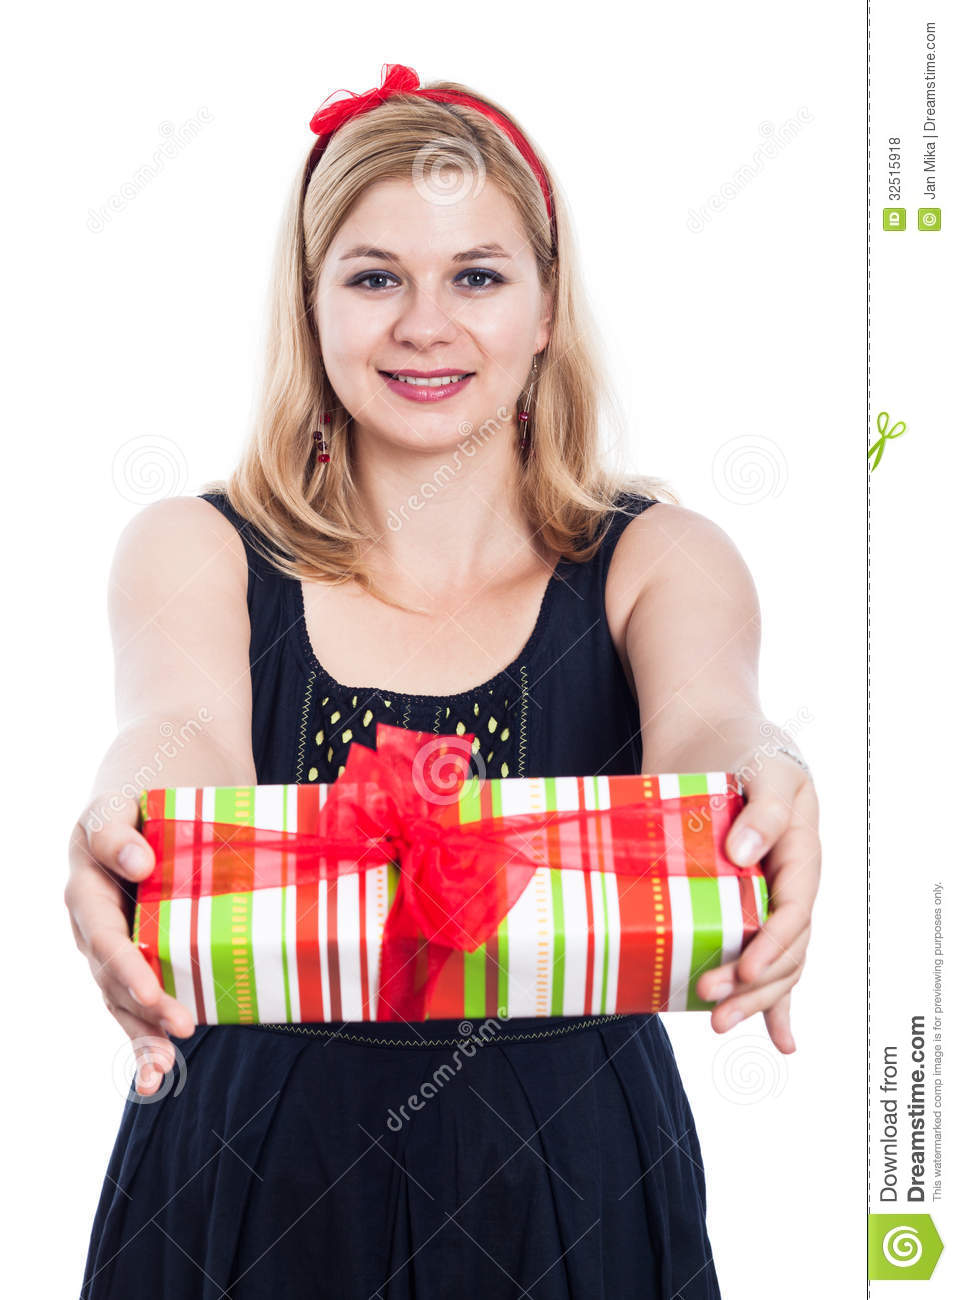 https://thumbs.dreamstime.com/z/happy-woman-giving-present-generous-isolated-white-background-32515918.jpg